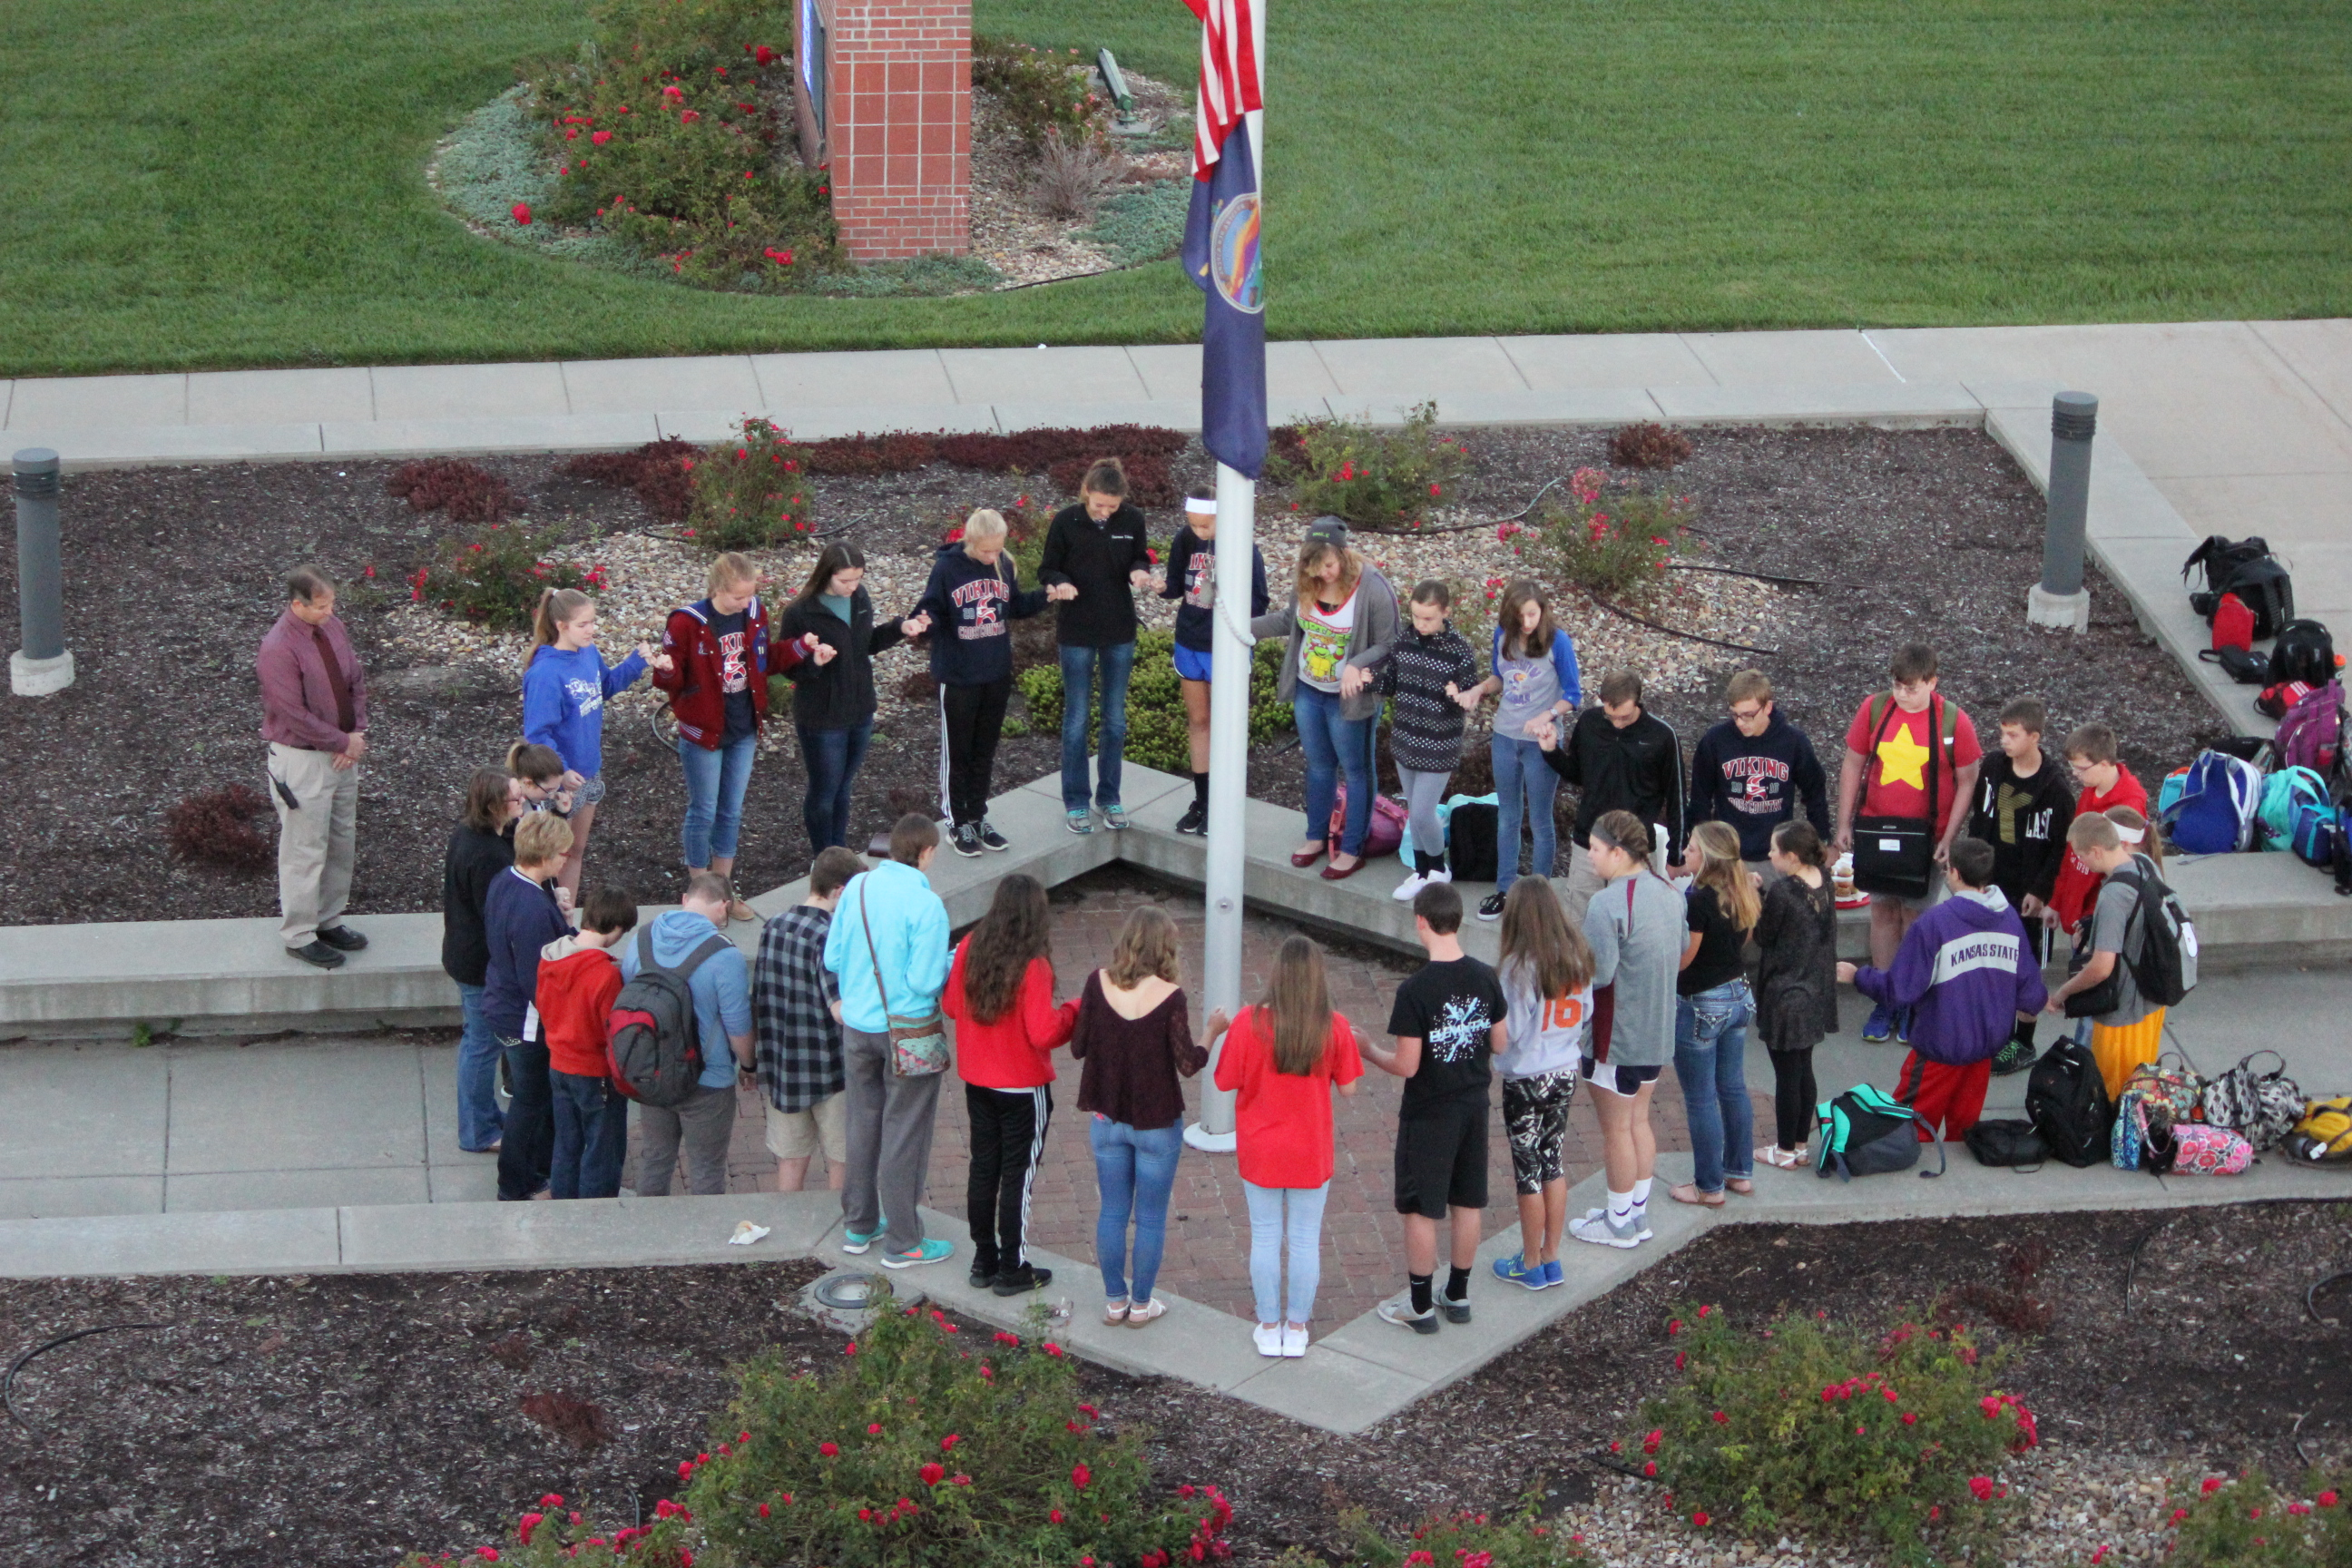 'See You at the Pole' celebrated today